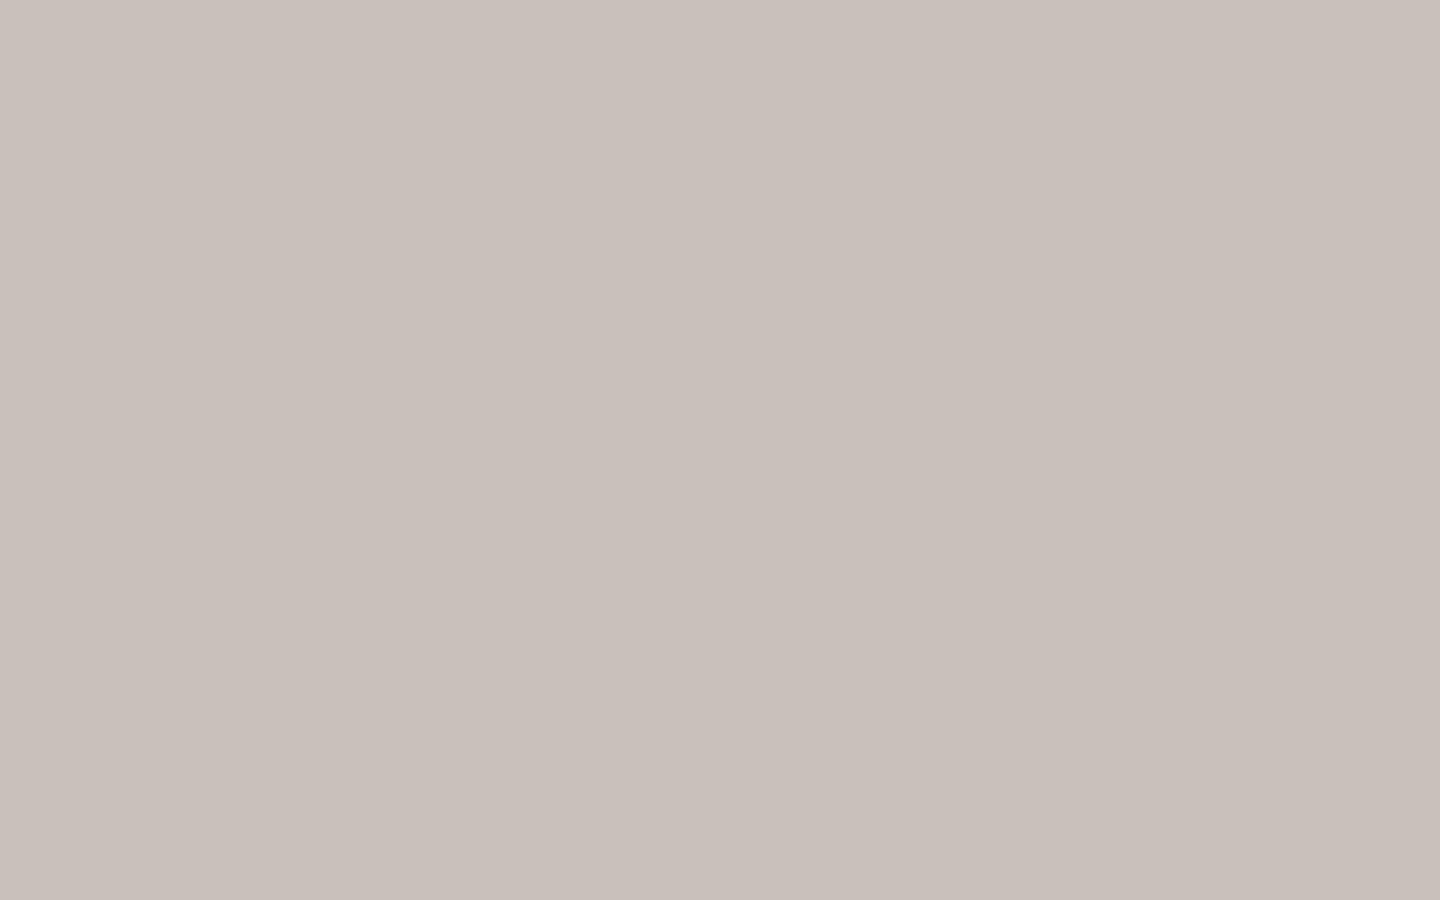 1440x900 Pale Silver Solid Color Background